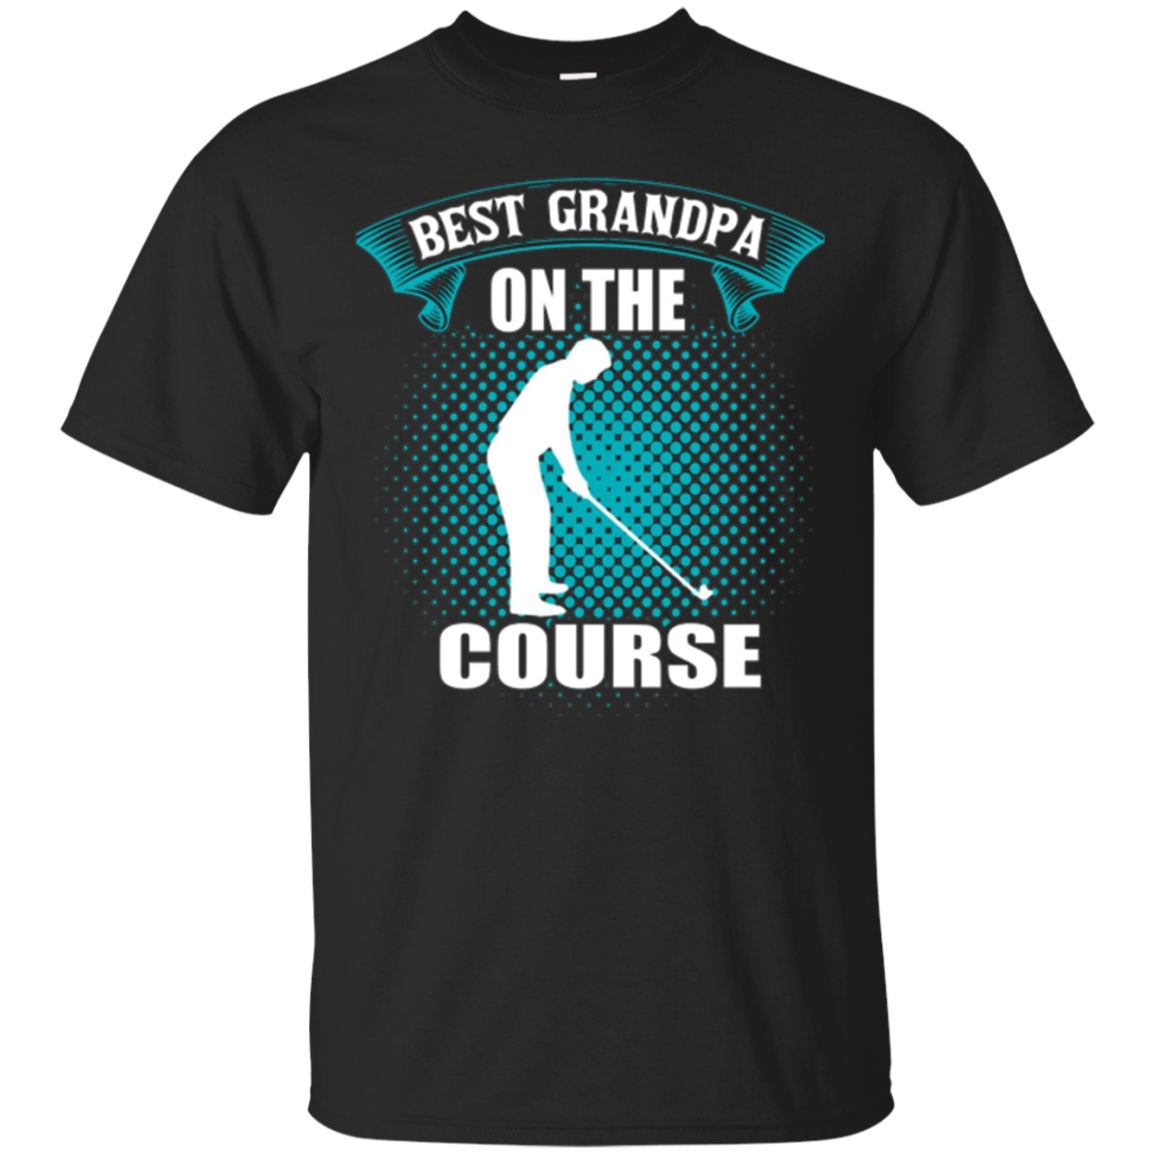 Mens Best Grandpa On The Course Golf Shirts for Men Gift for Dad